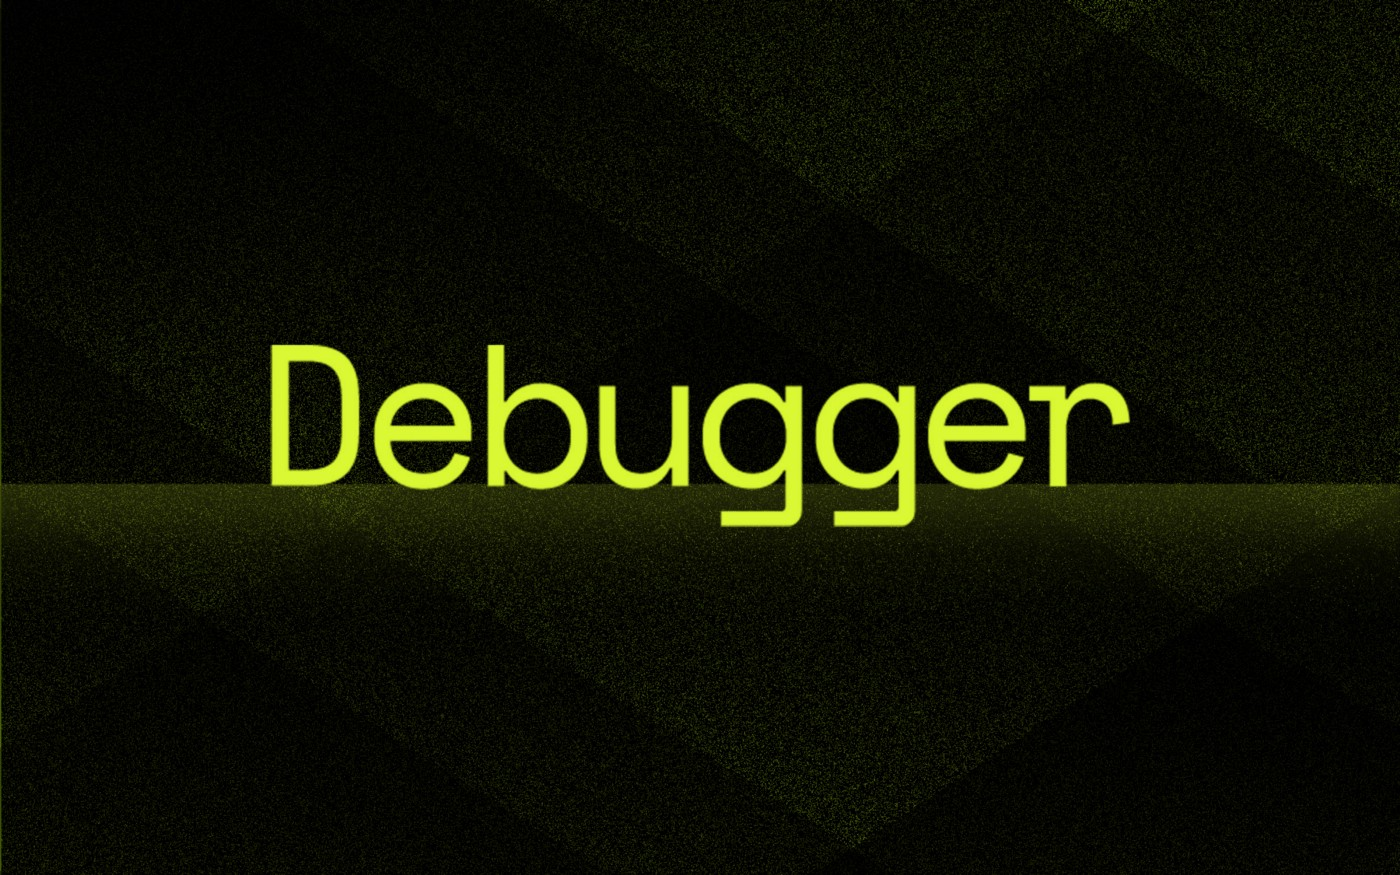 """Debugger"" in text"